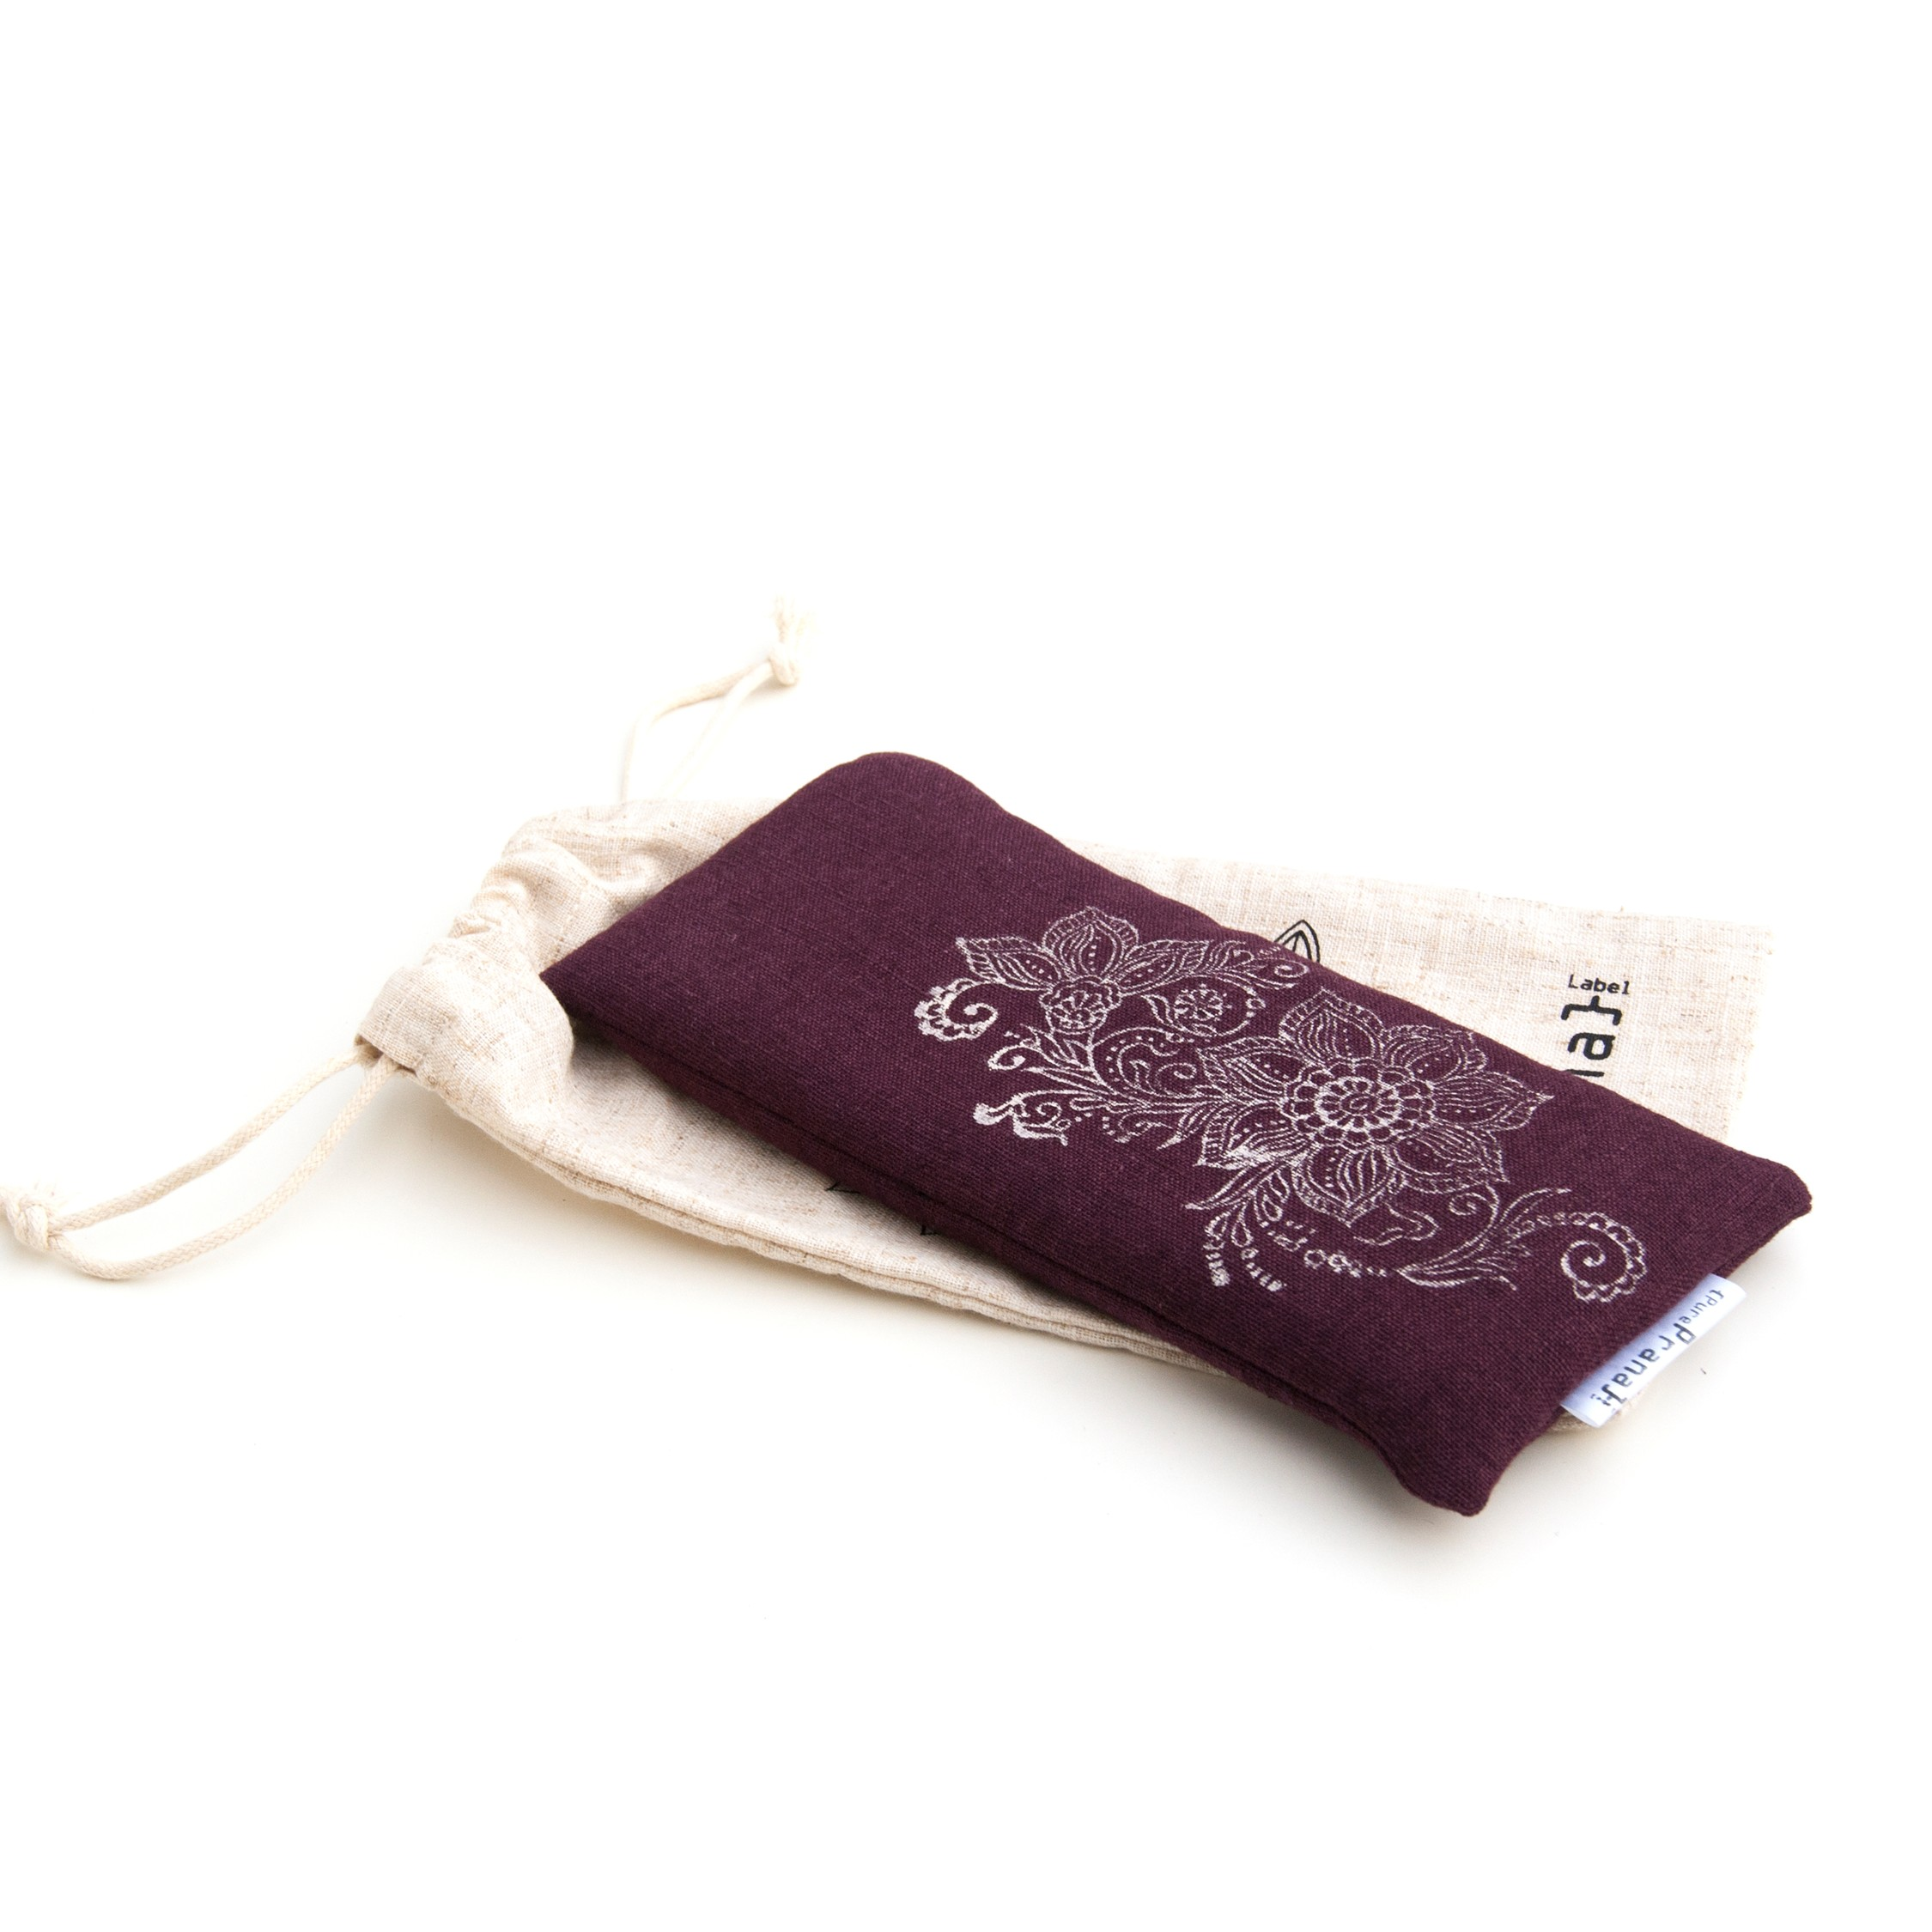 Lavender eye pillow in Mehndi design, eggplant colored.